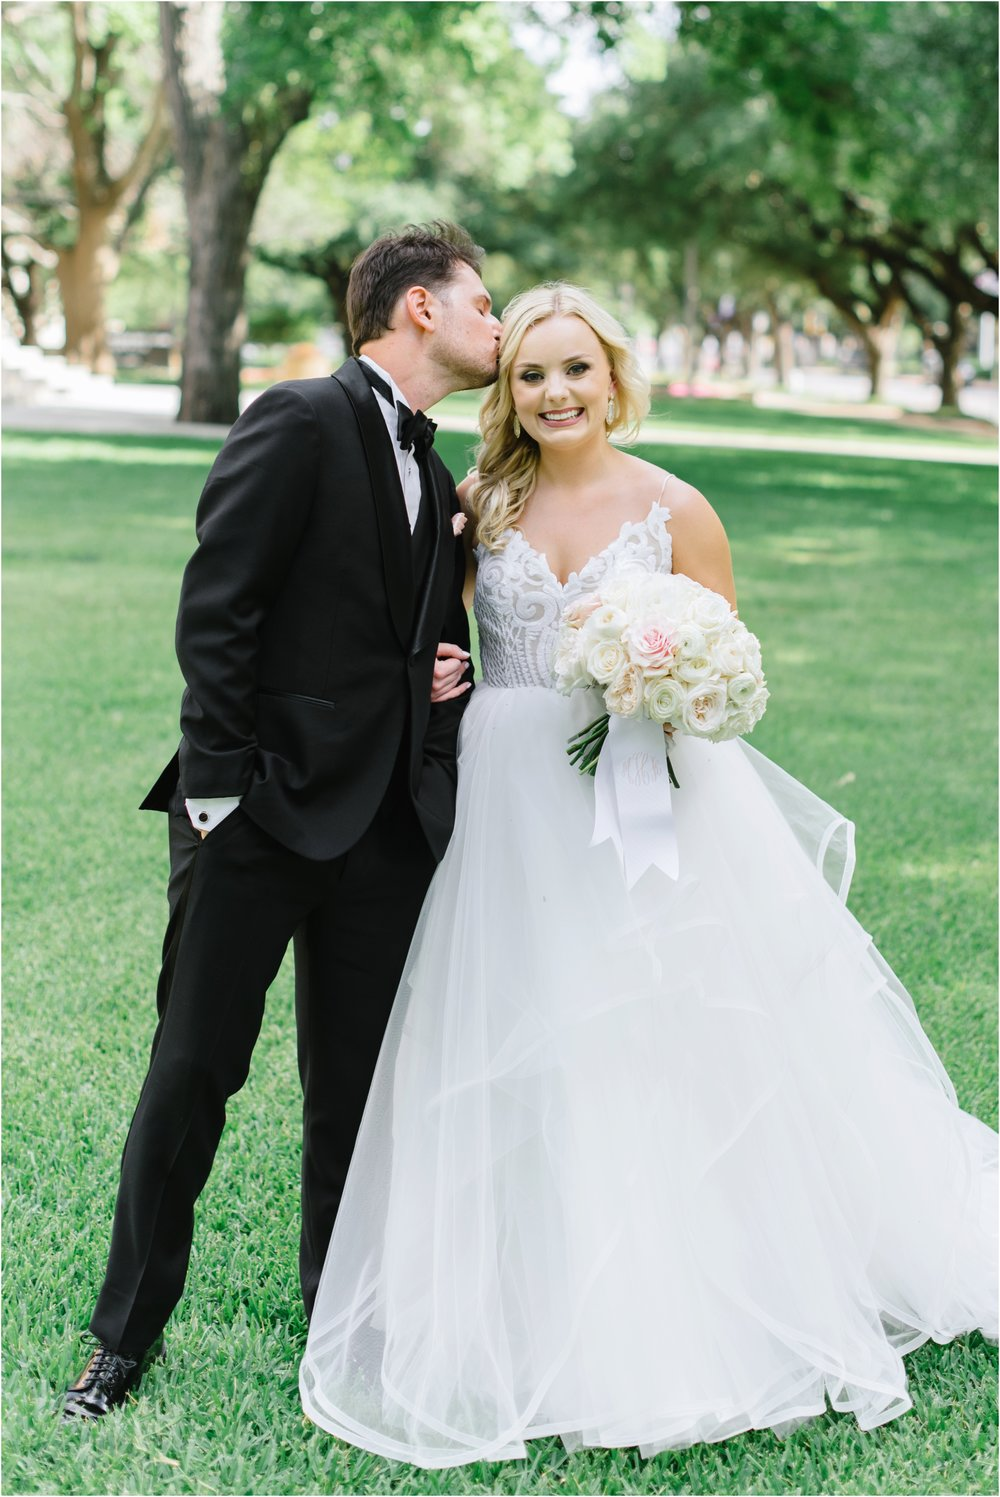 dallasweddingphotographer_fortworthweddingphotographer_texasweddingphotographer_mattandjulieweddings_0011.jpg